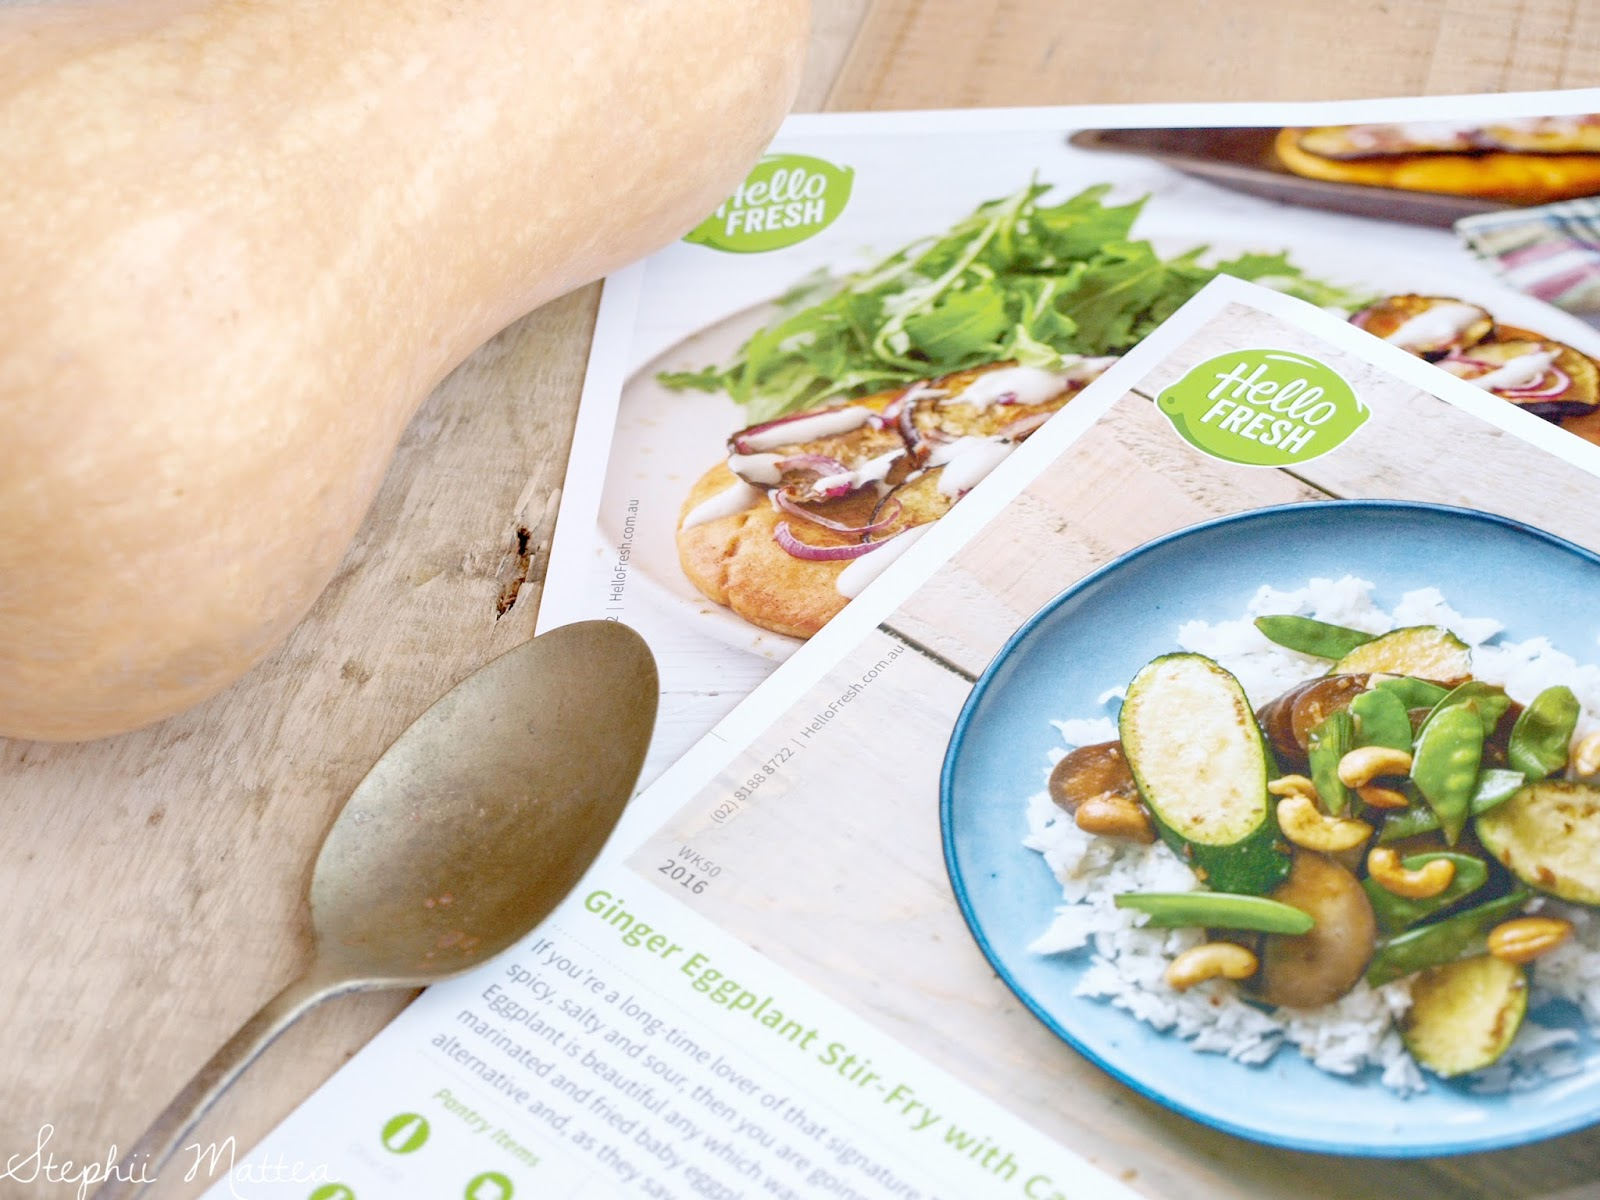 Official Meal Kit Delivery Service Hellofresh